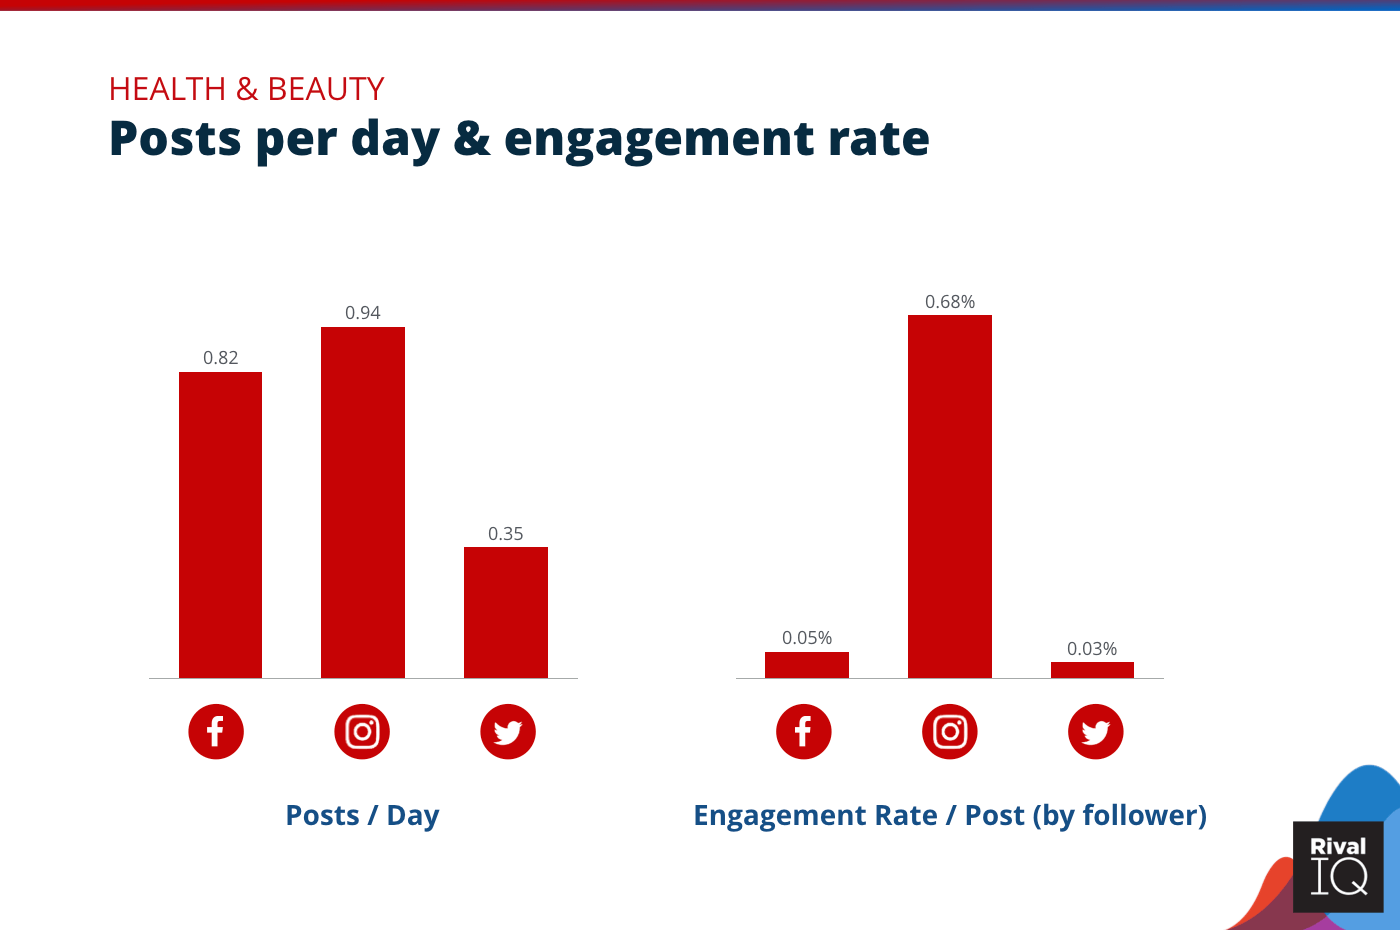 Chart of Posts per day and engagement rate per post across all channels, Health & Beauty